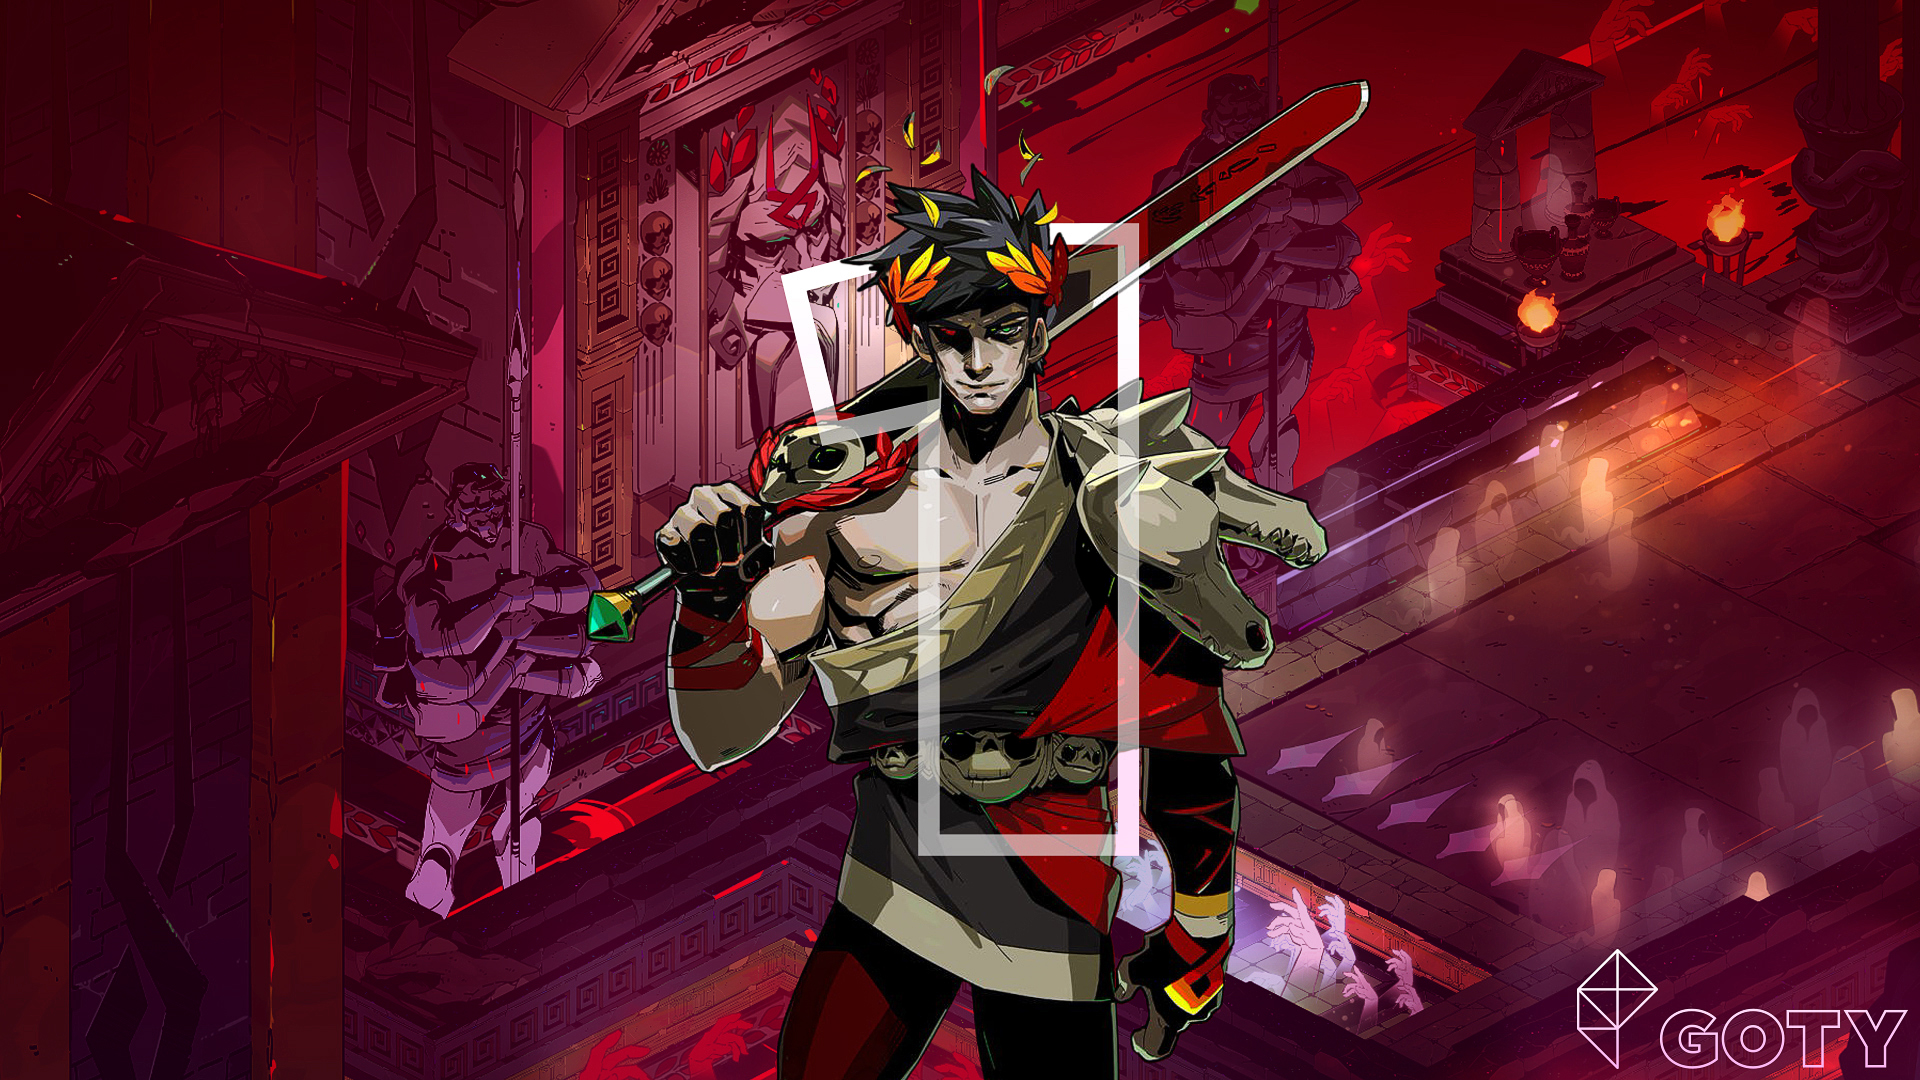 artwork of Zagreus from Hades superimposed on the starting area, with a stenciled number 1 on top of him